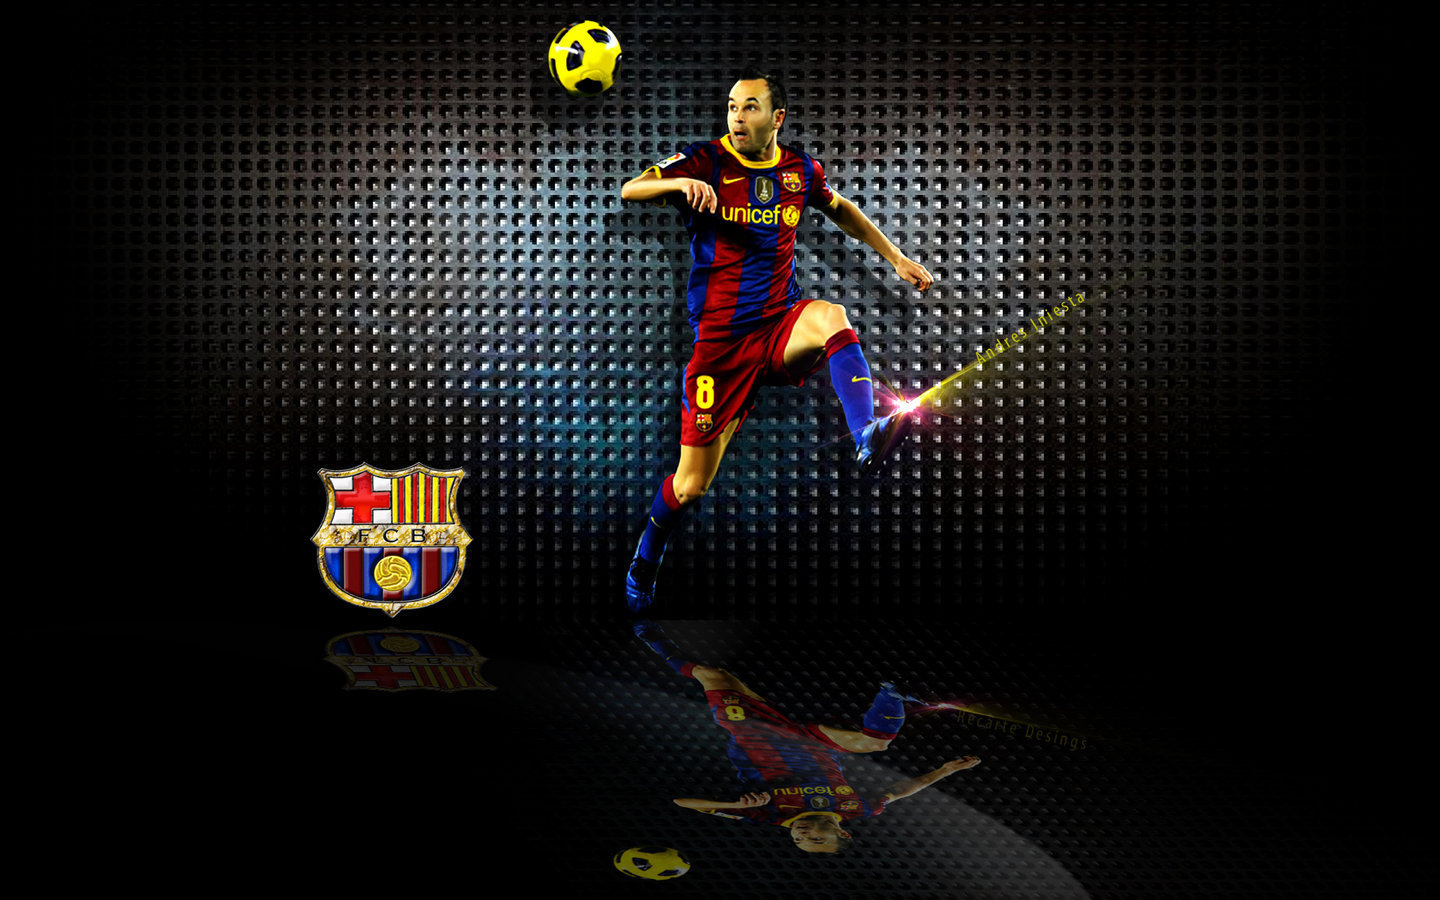 fcb wallpapers hd free - photo #34